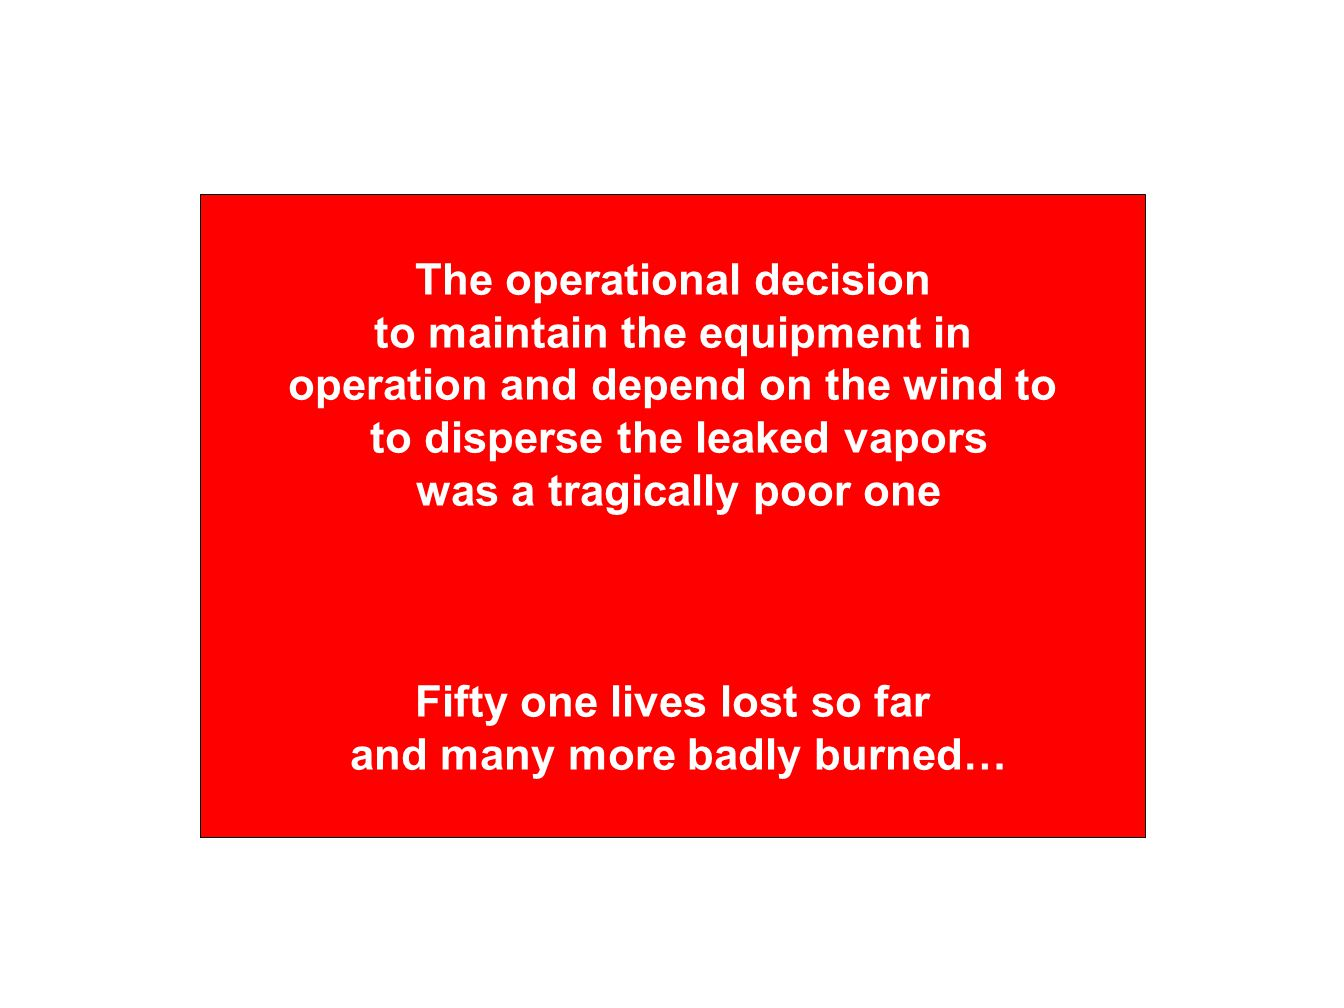 The operational decision to maintain the equipment in